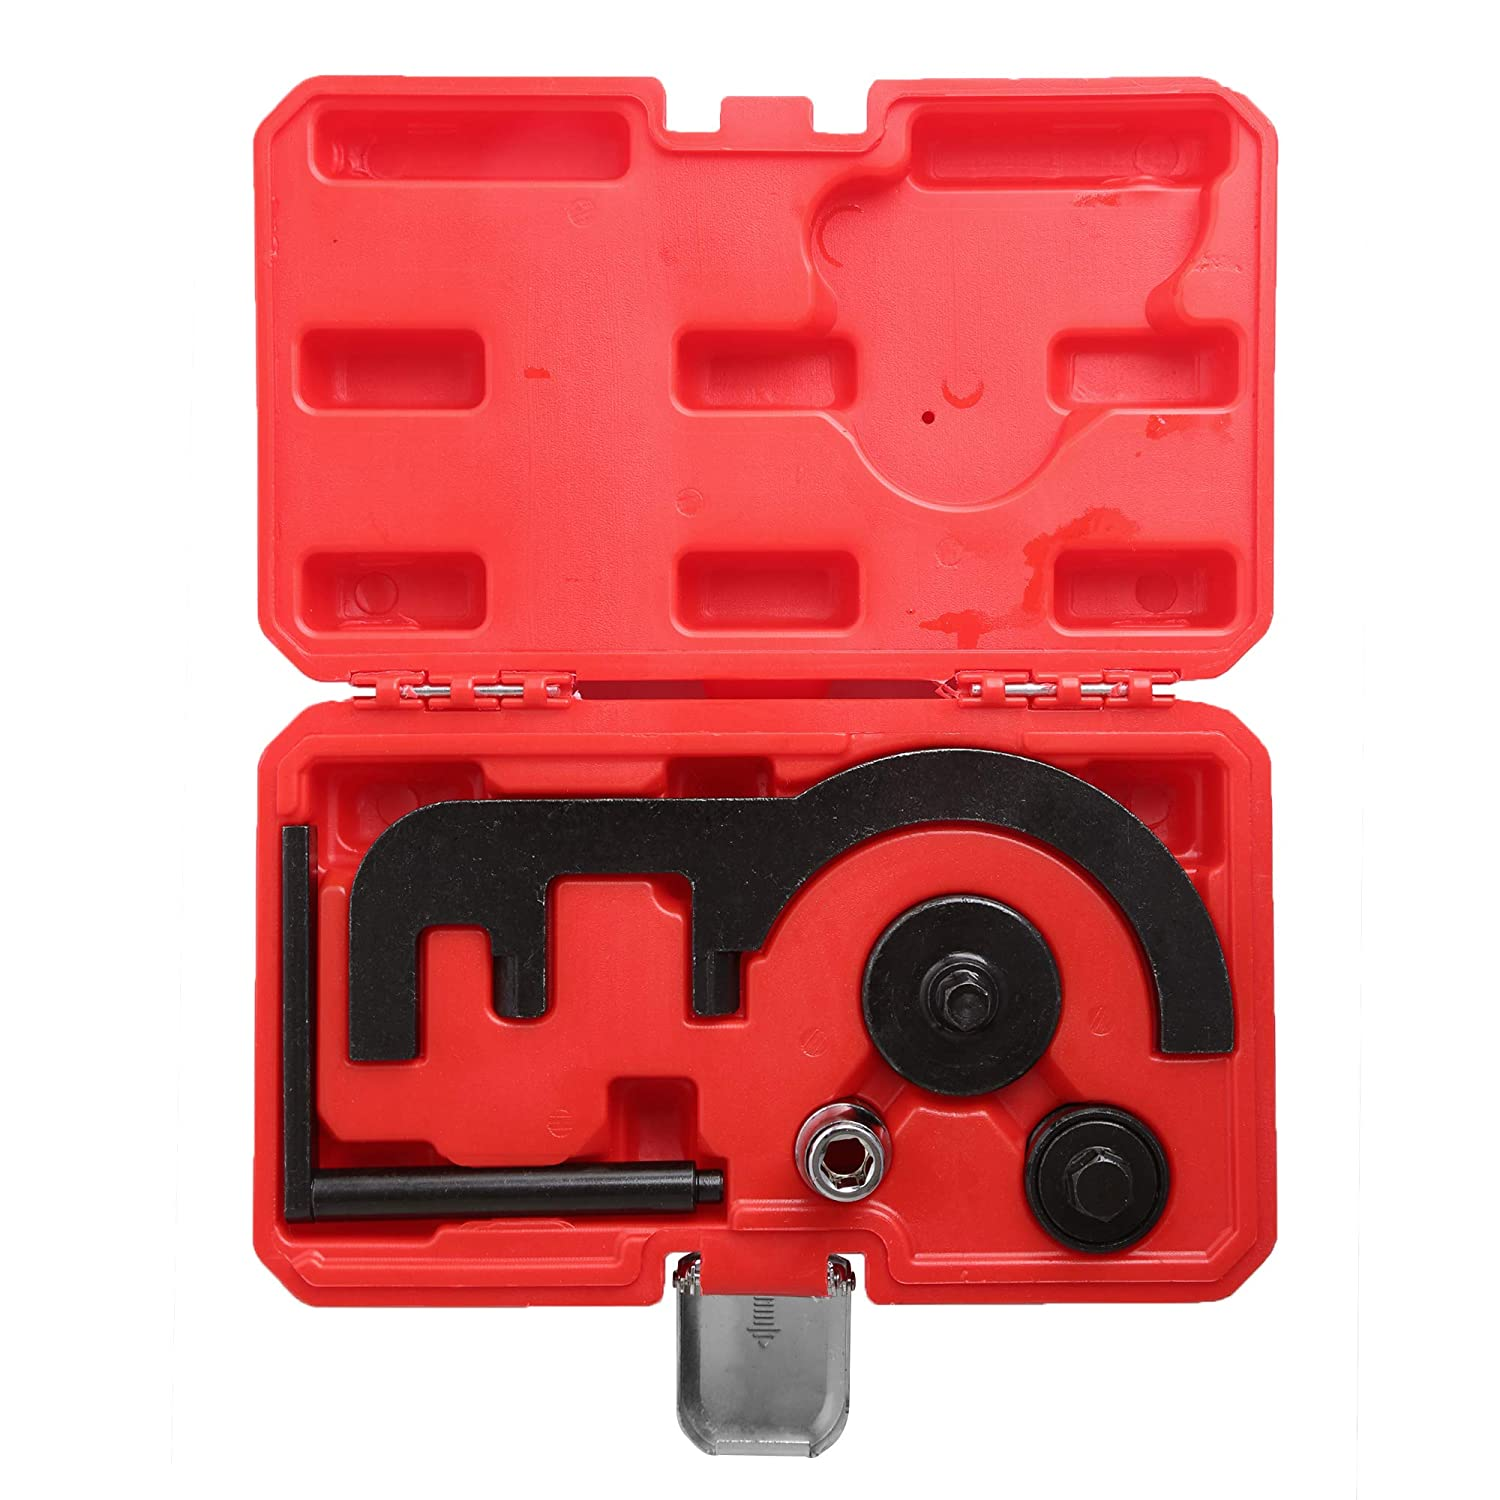 WINTOOLS Compatible for Timing Tool Setting Locking Tools Set for BMW N47 N47s 2.0 118 120 318 320 520 X3